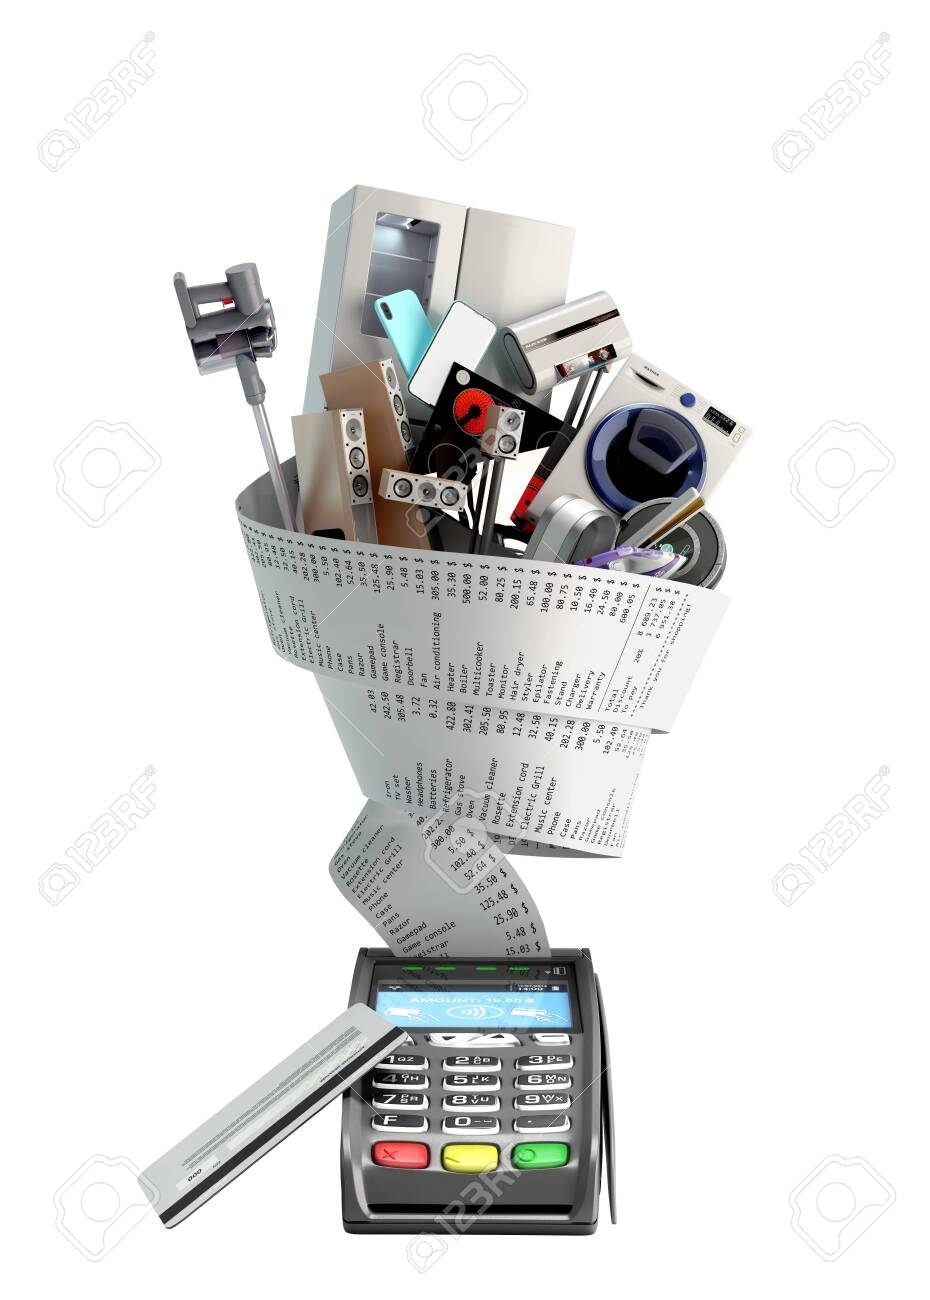 concept of online ordering of home appliances the technique is wrapped in a check coming from the card terminal 3d render on white no shadow - 153212746